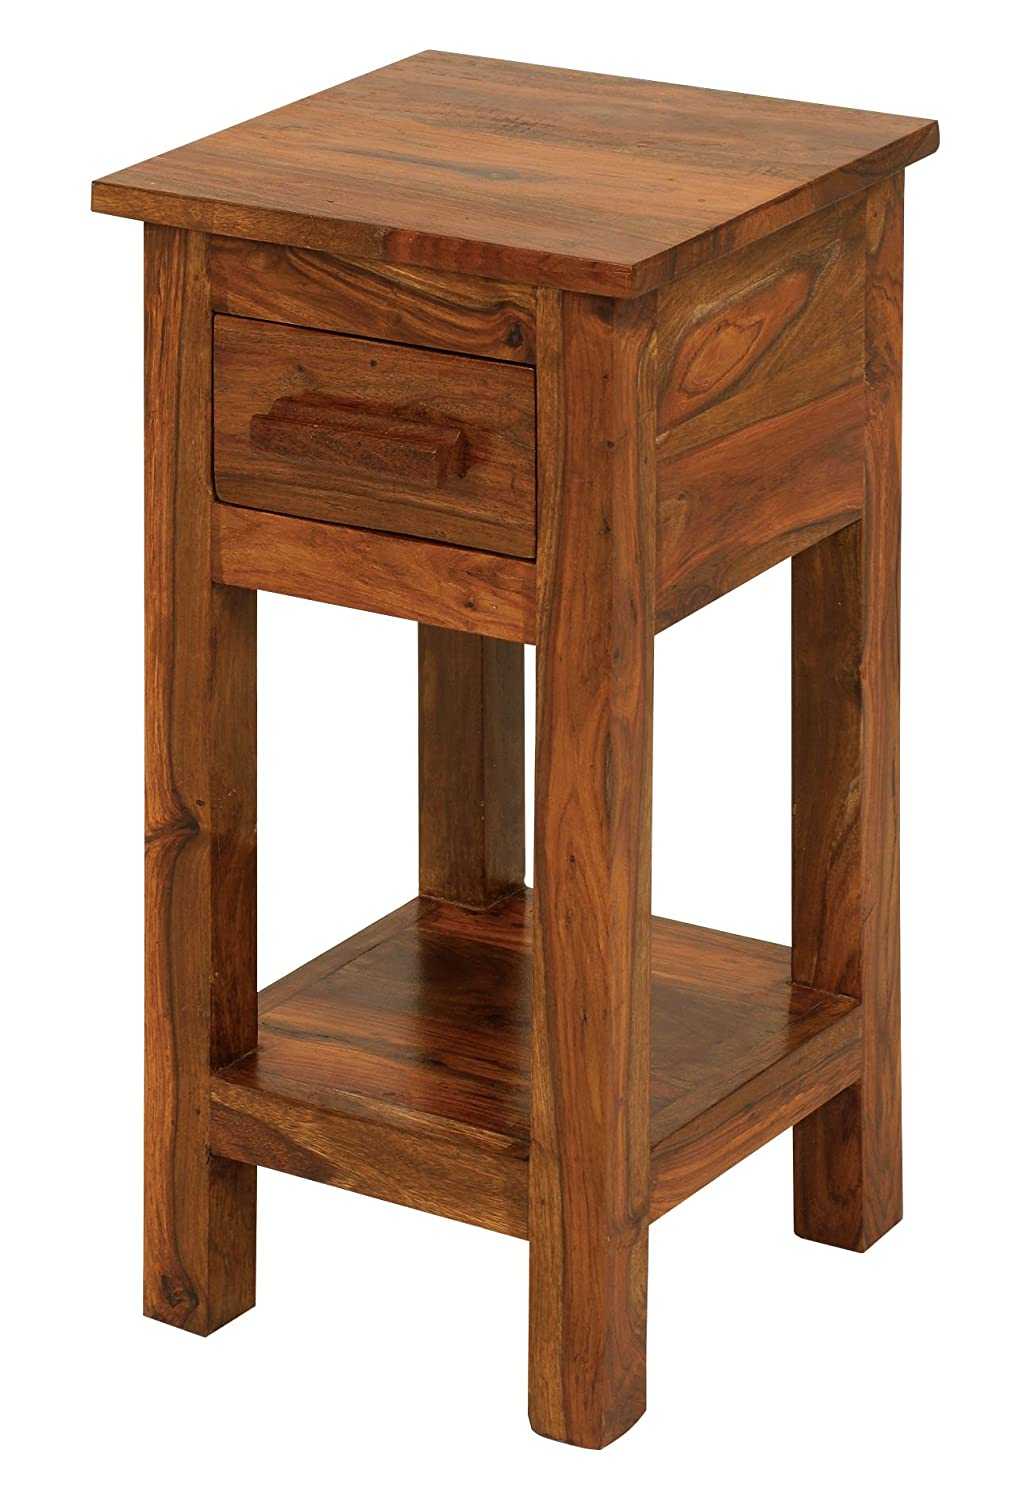 Lamp Tables Living Room Furniture Maharajah Indian Rosewood Tall 1 Drawer Lamp Table Amazoncouk